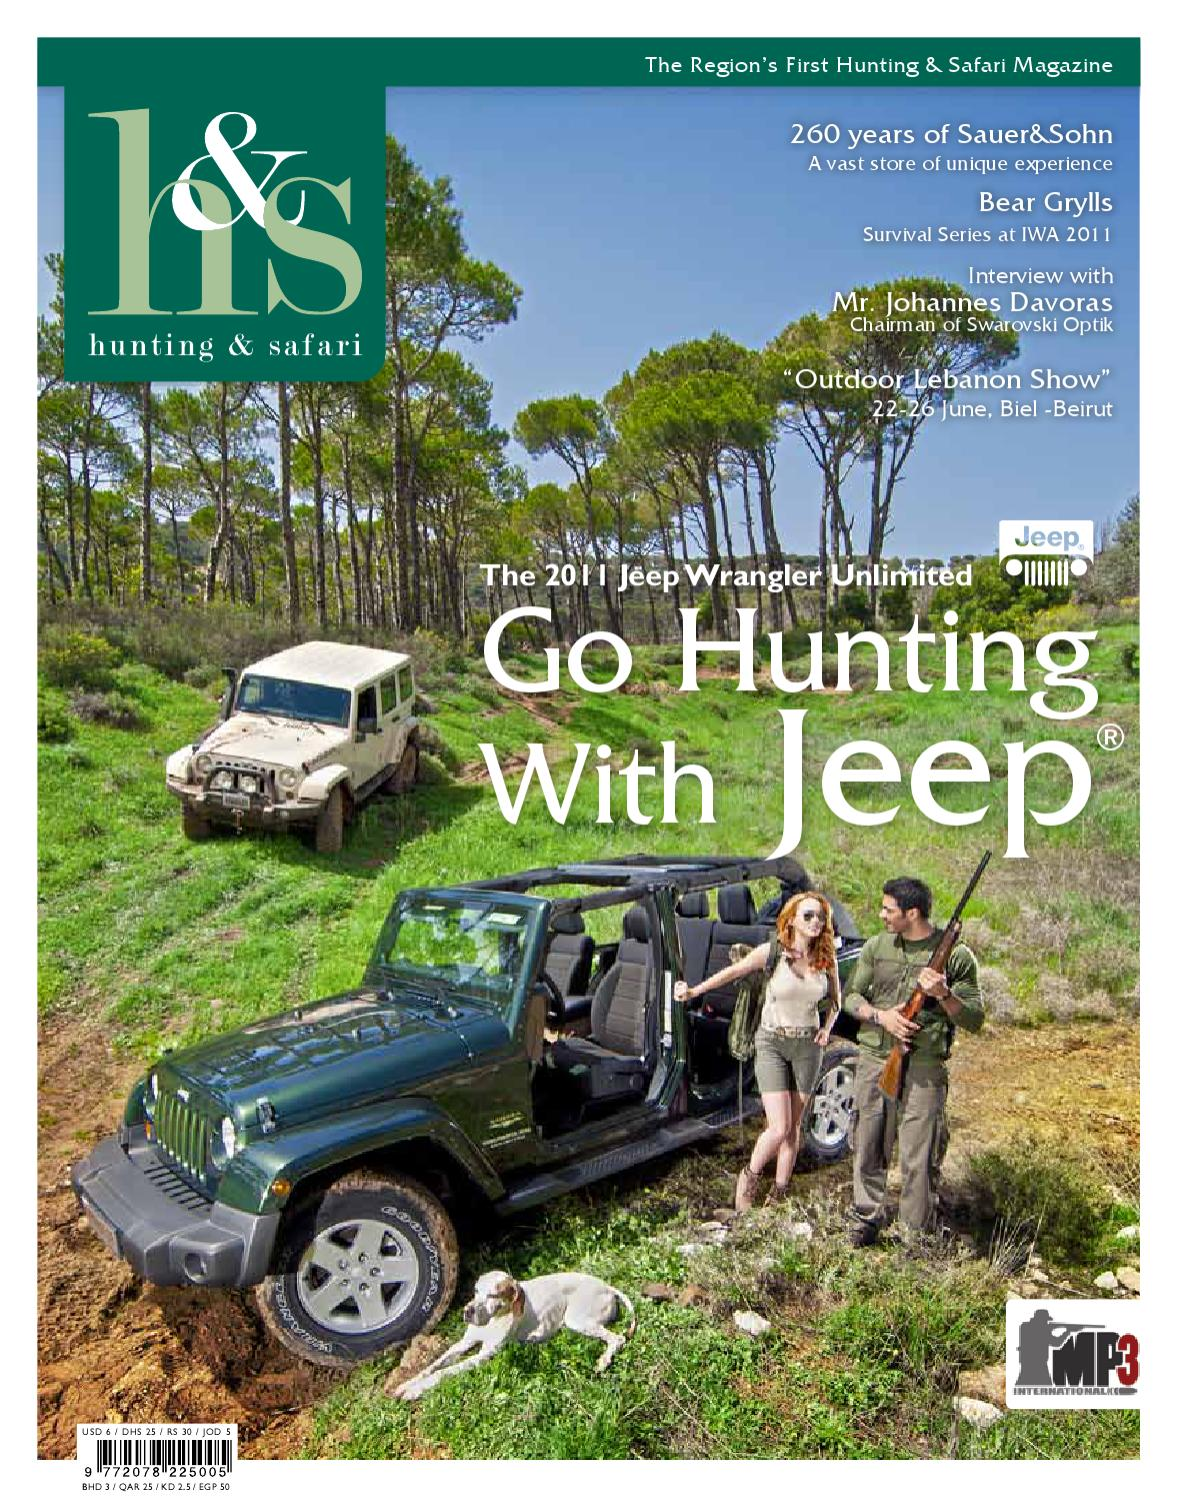 Hunting nad Safari Magazine - Issue no 5 by Amed - issuu